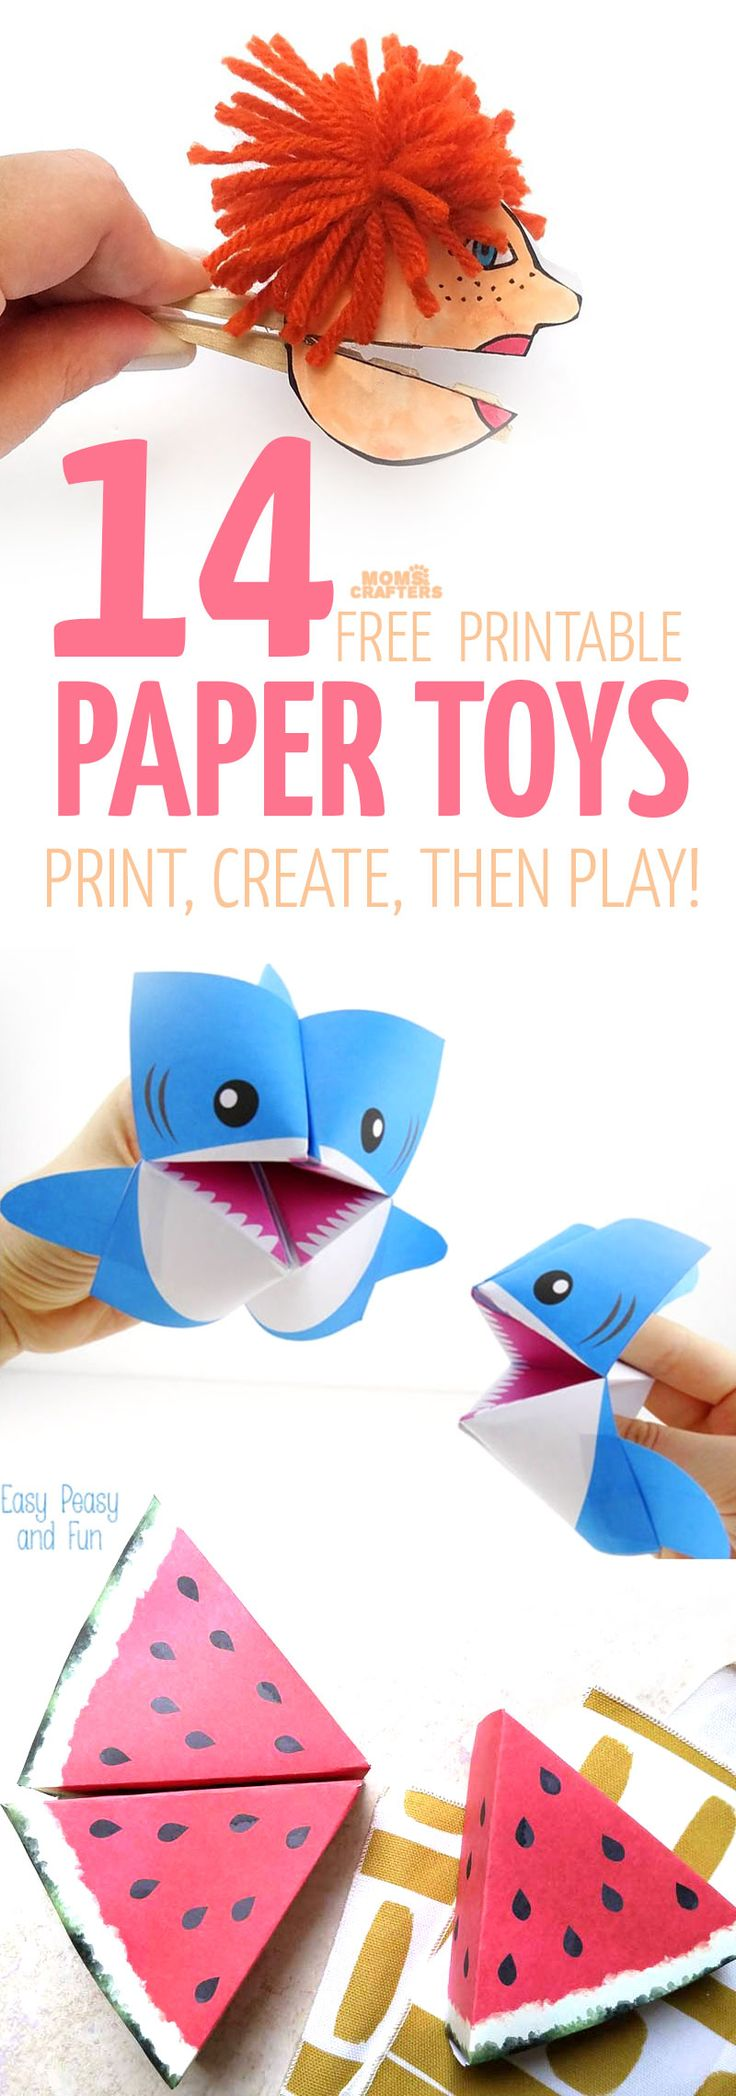 I love paper toy templates - you can really refresh them frequently, and then recycle them when you're done. These free printables for play make awesome paper crafts for kids and adults and provide so much pretend play opportunities too!